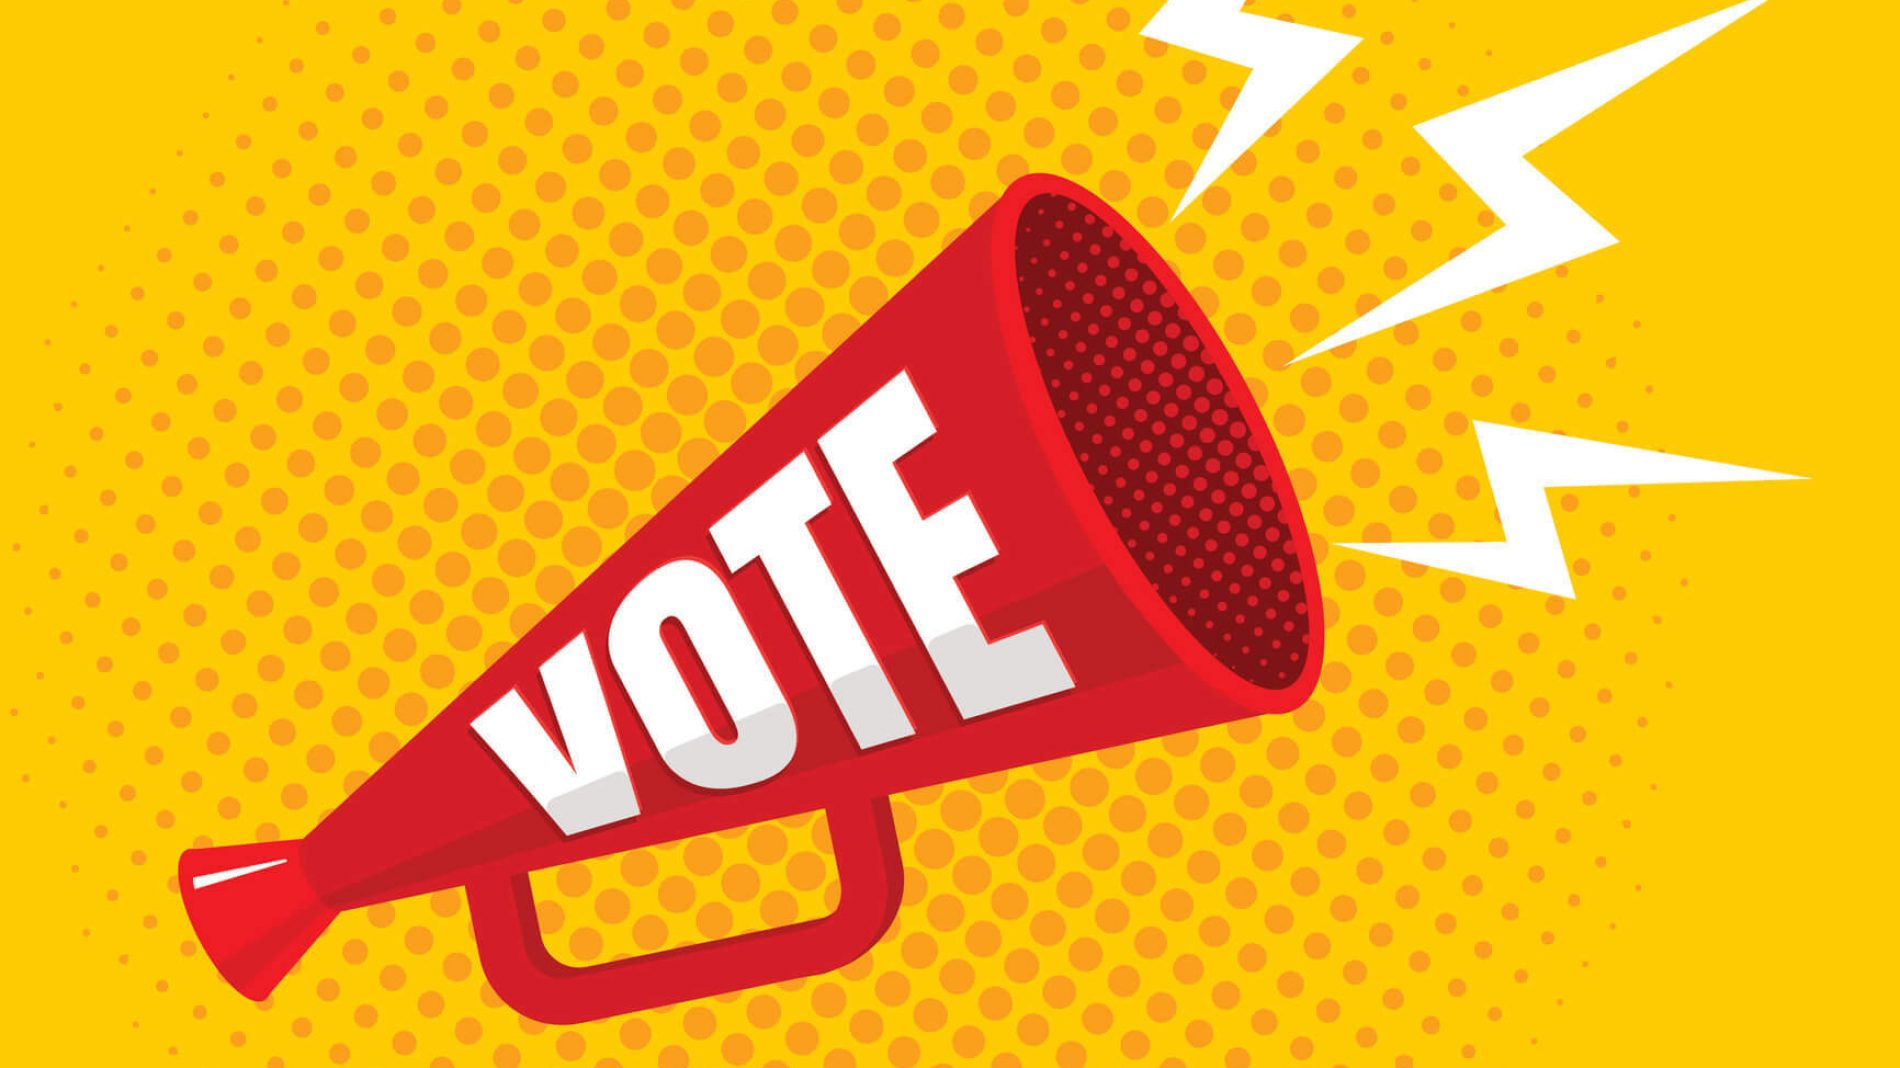 Megaphone with vote written on it against a yellow background